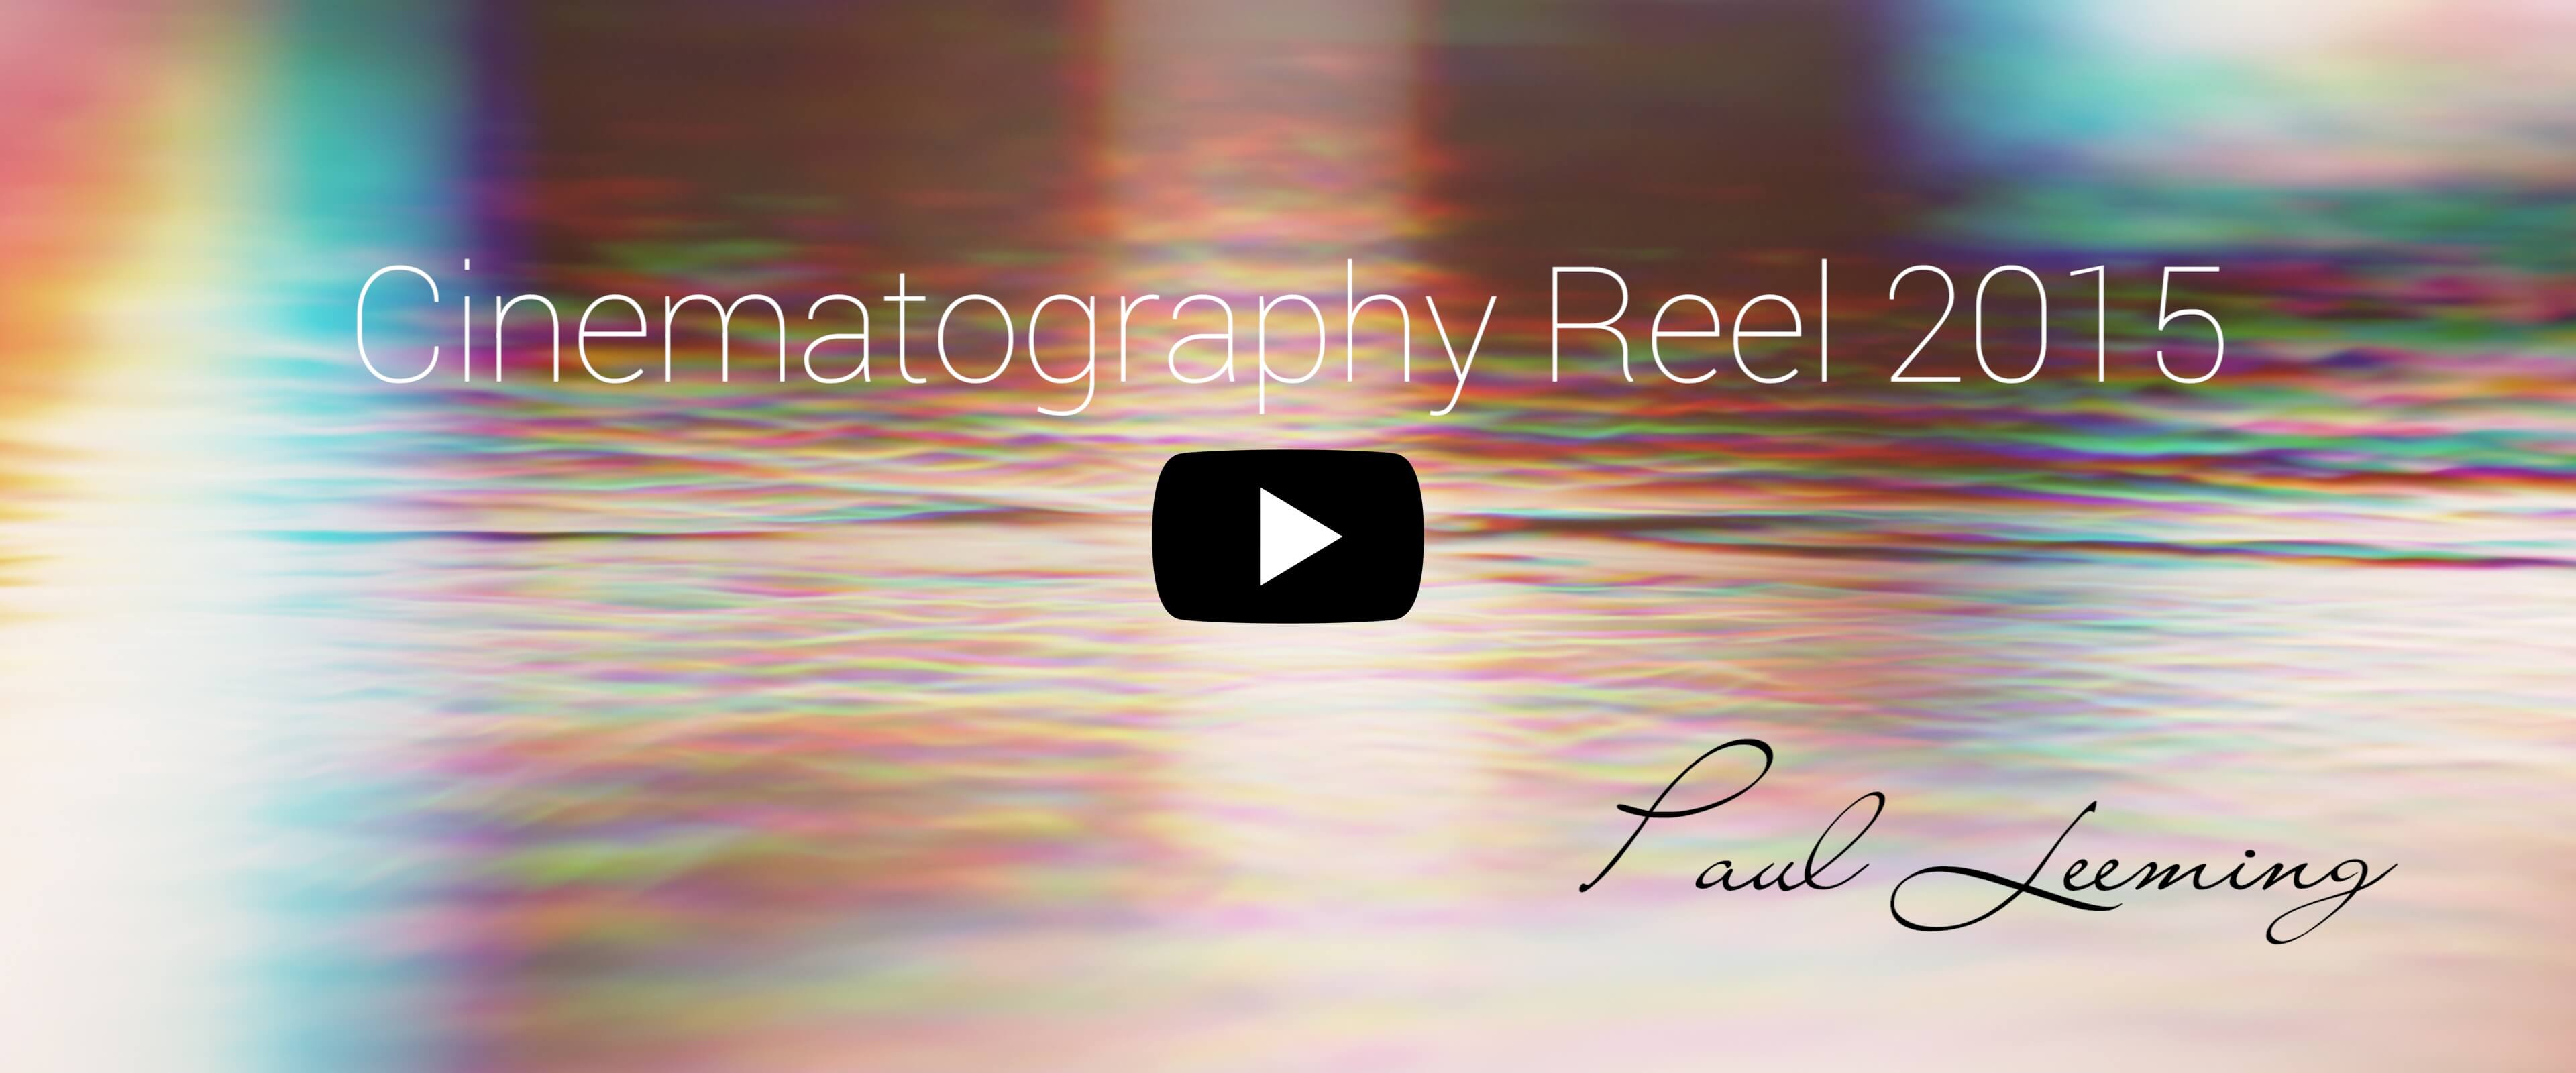 Cinematography Reel 2015